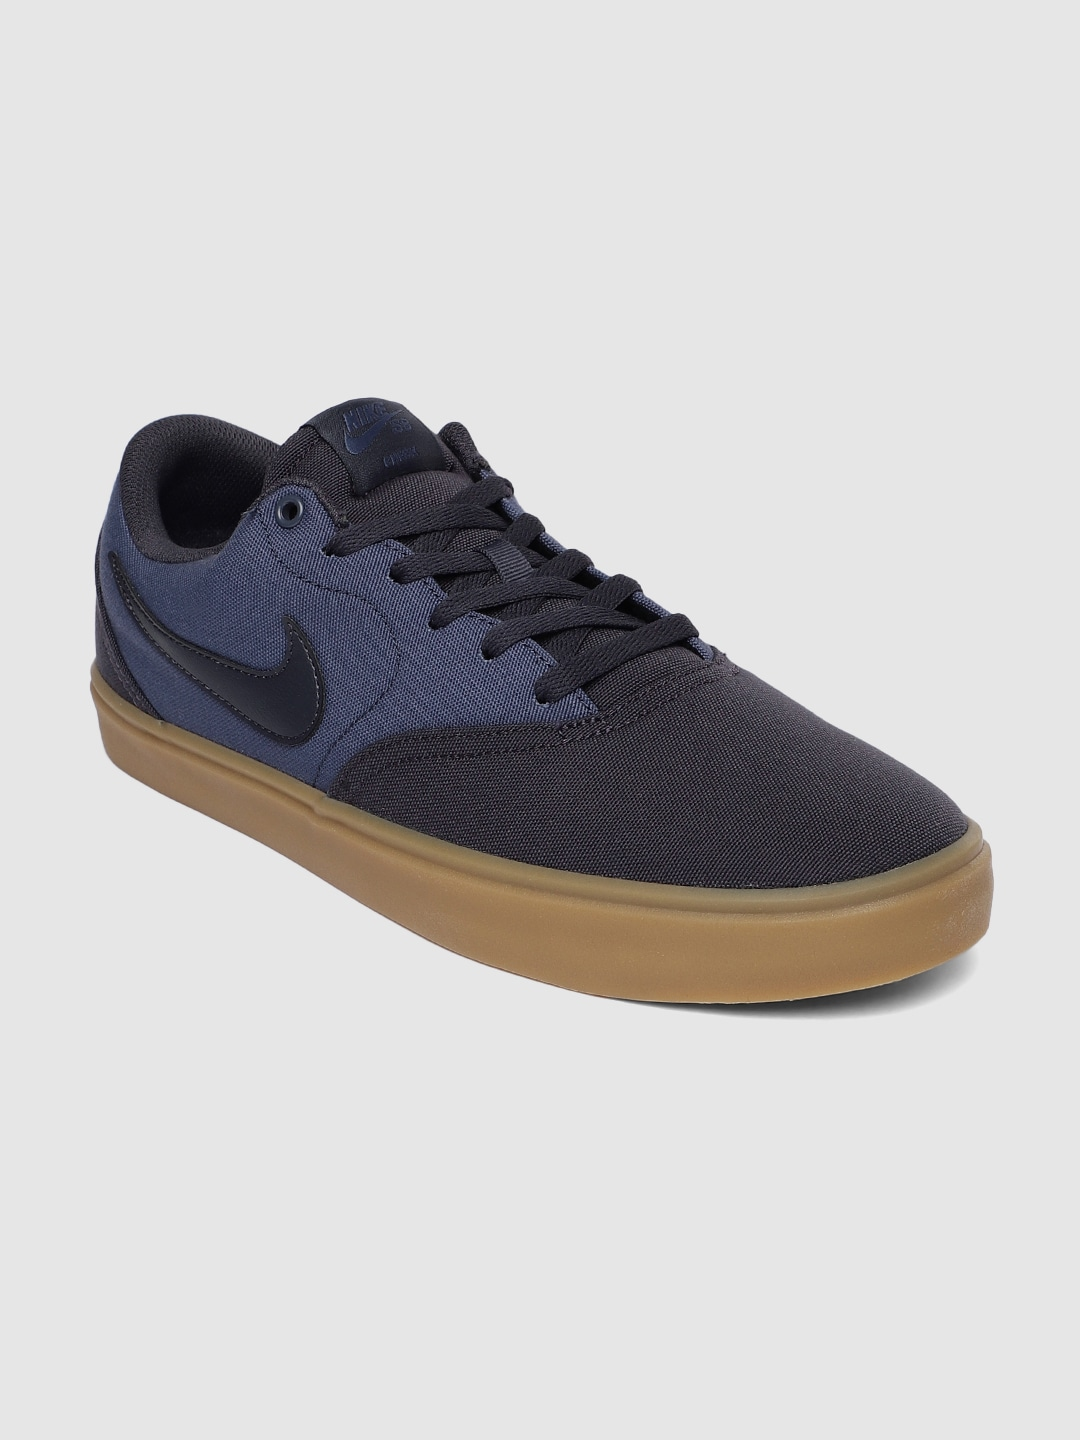 Navy Blue Skate Shoes